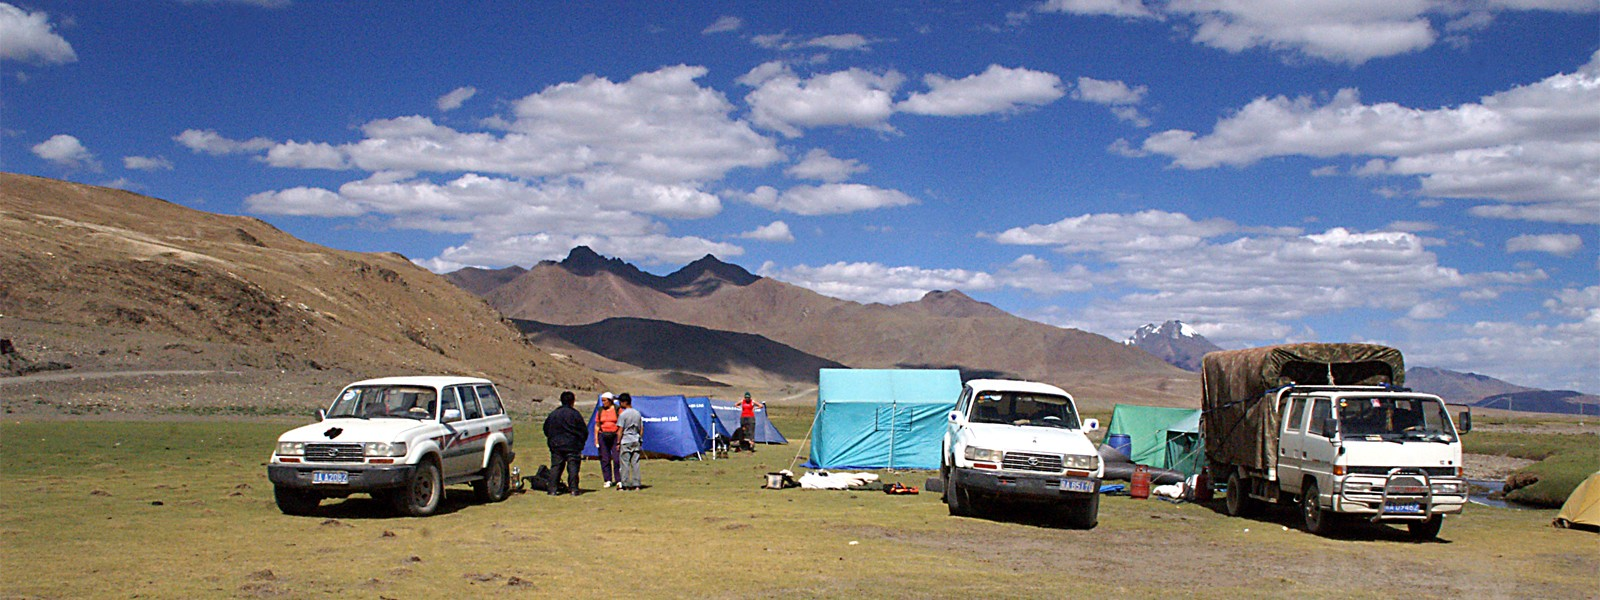 Kailash Manasarovar Lake Heli Tours